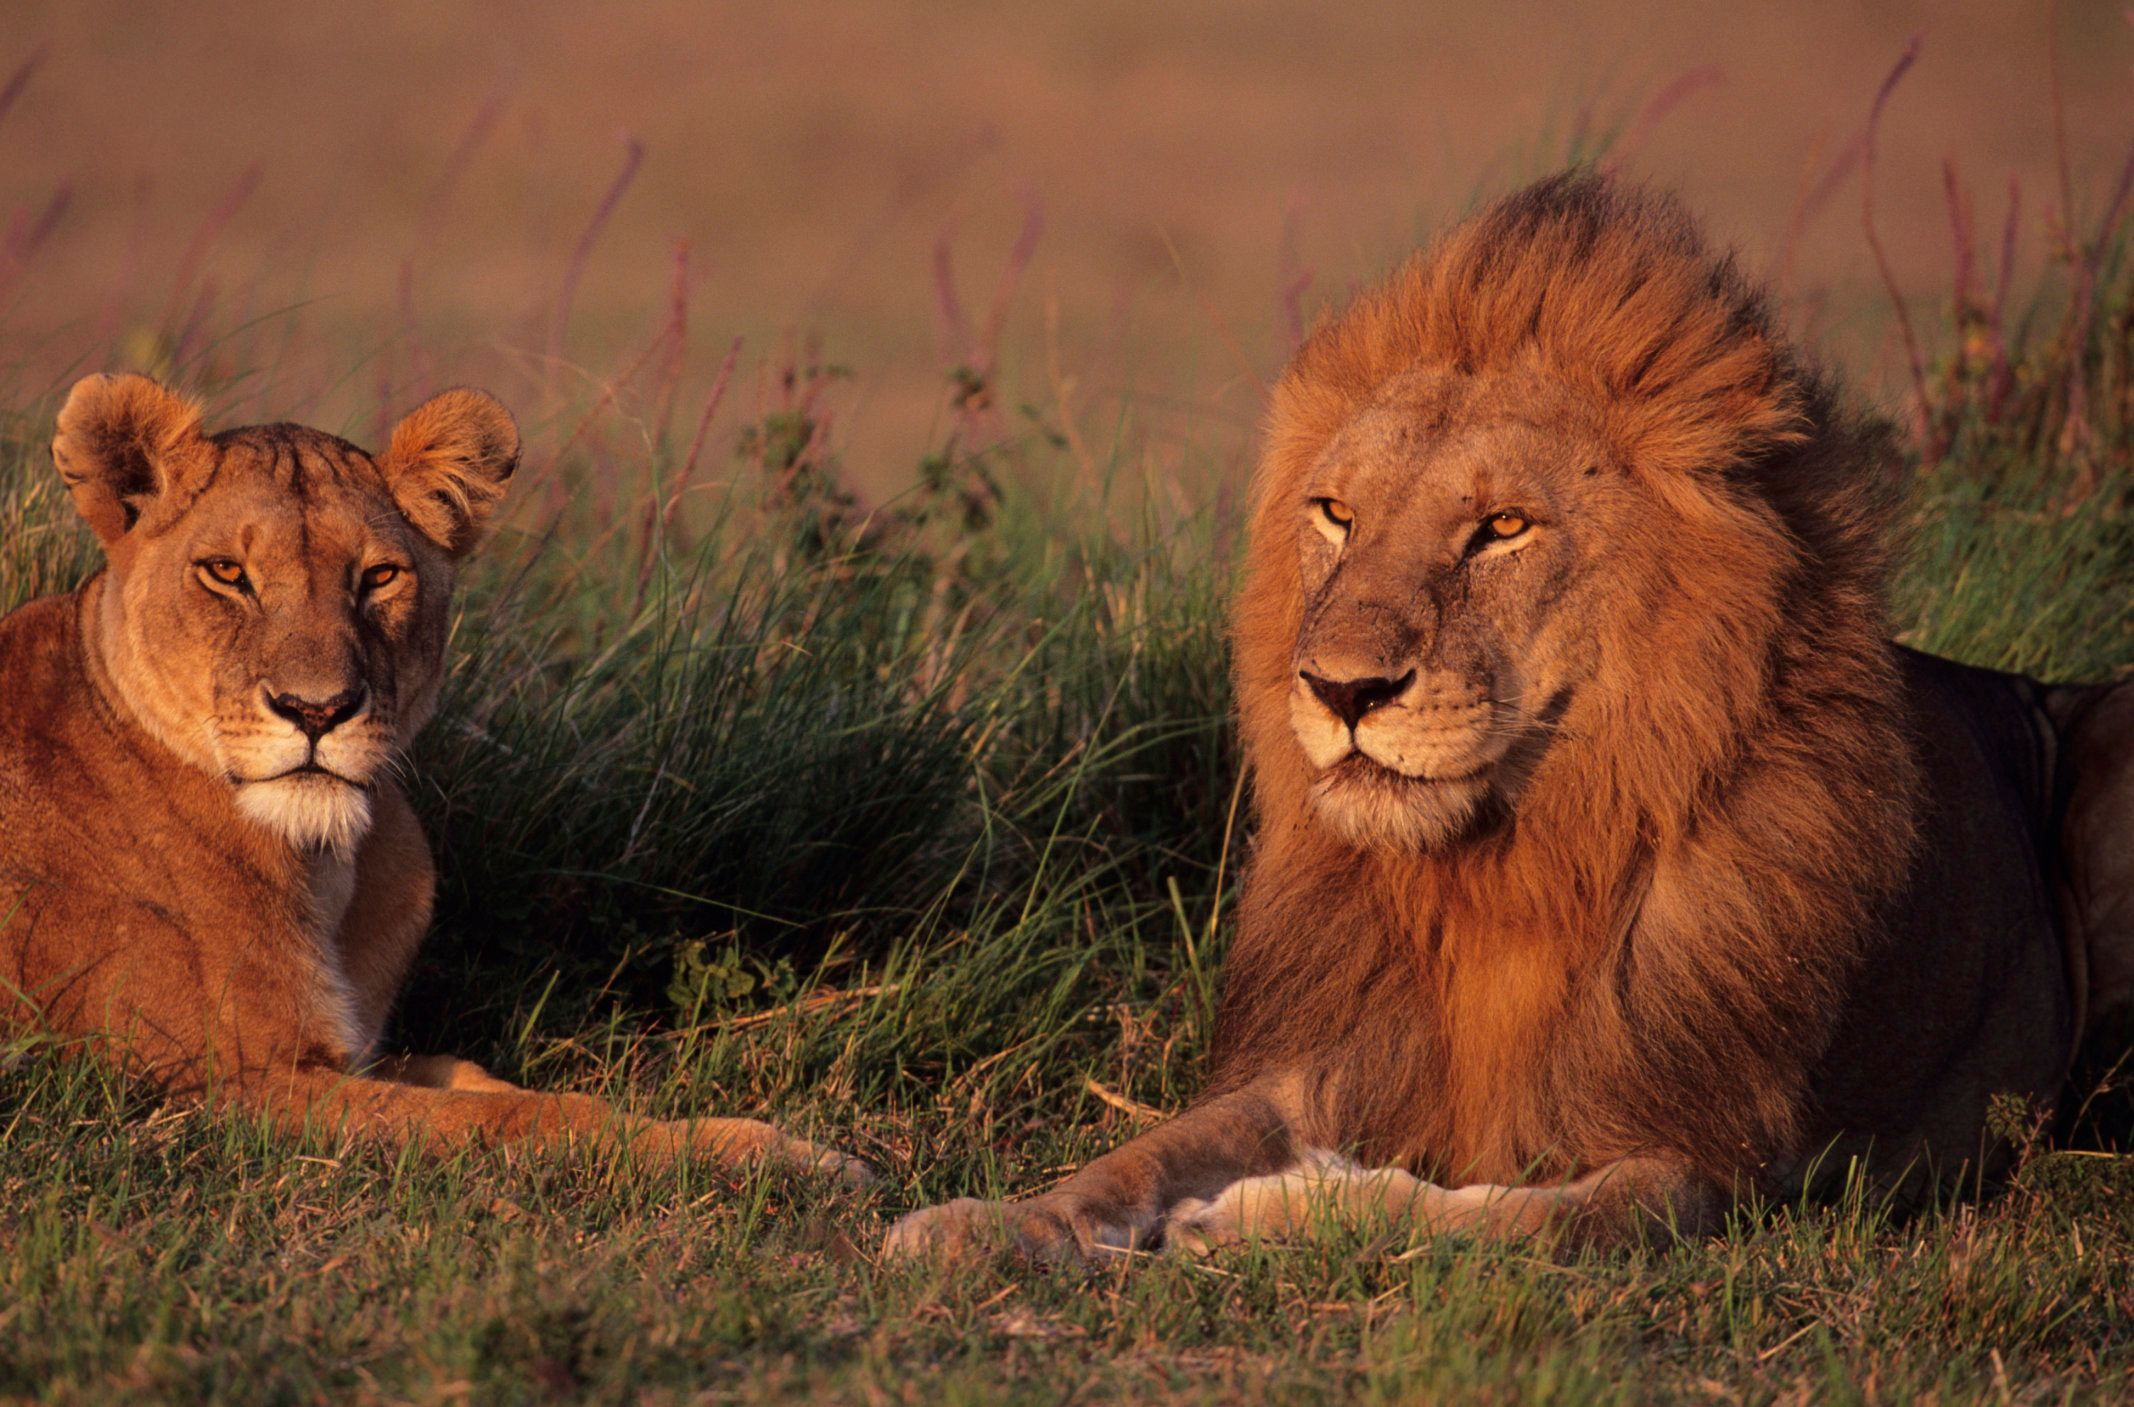 The two lions, not pictured, were shot dead after a man entered their enclosure at the Metropolitan Zoo in Santiago, Chile, o